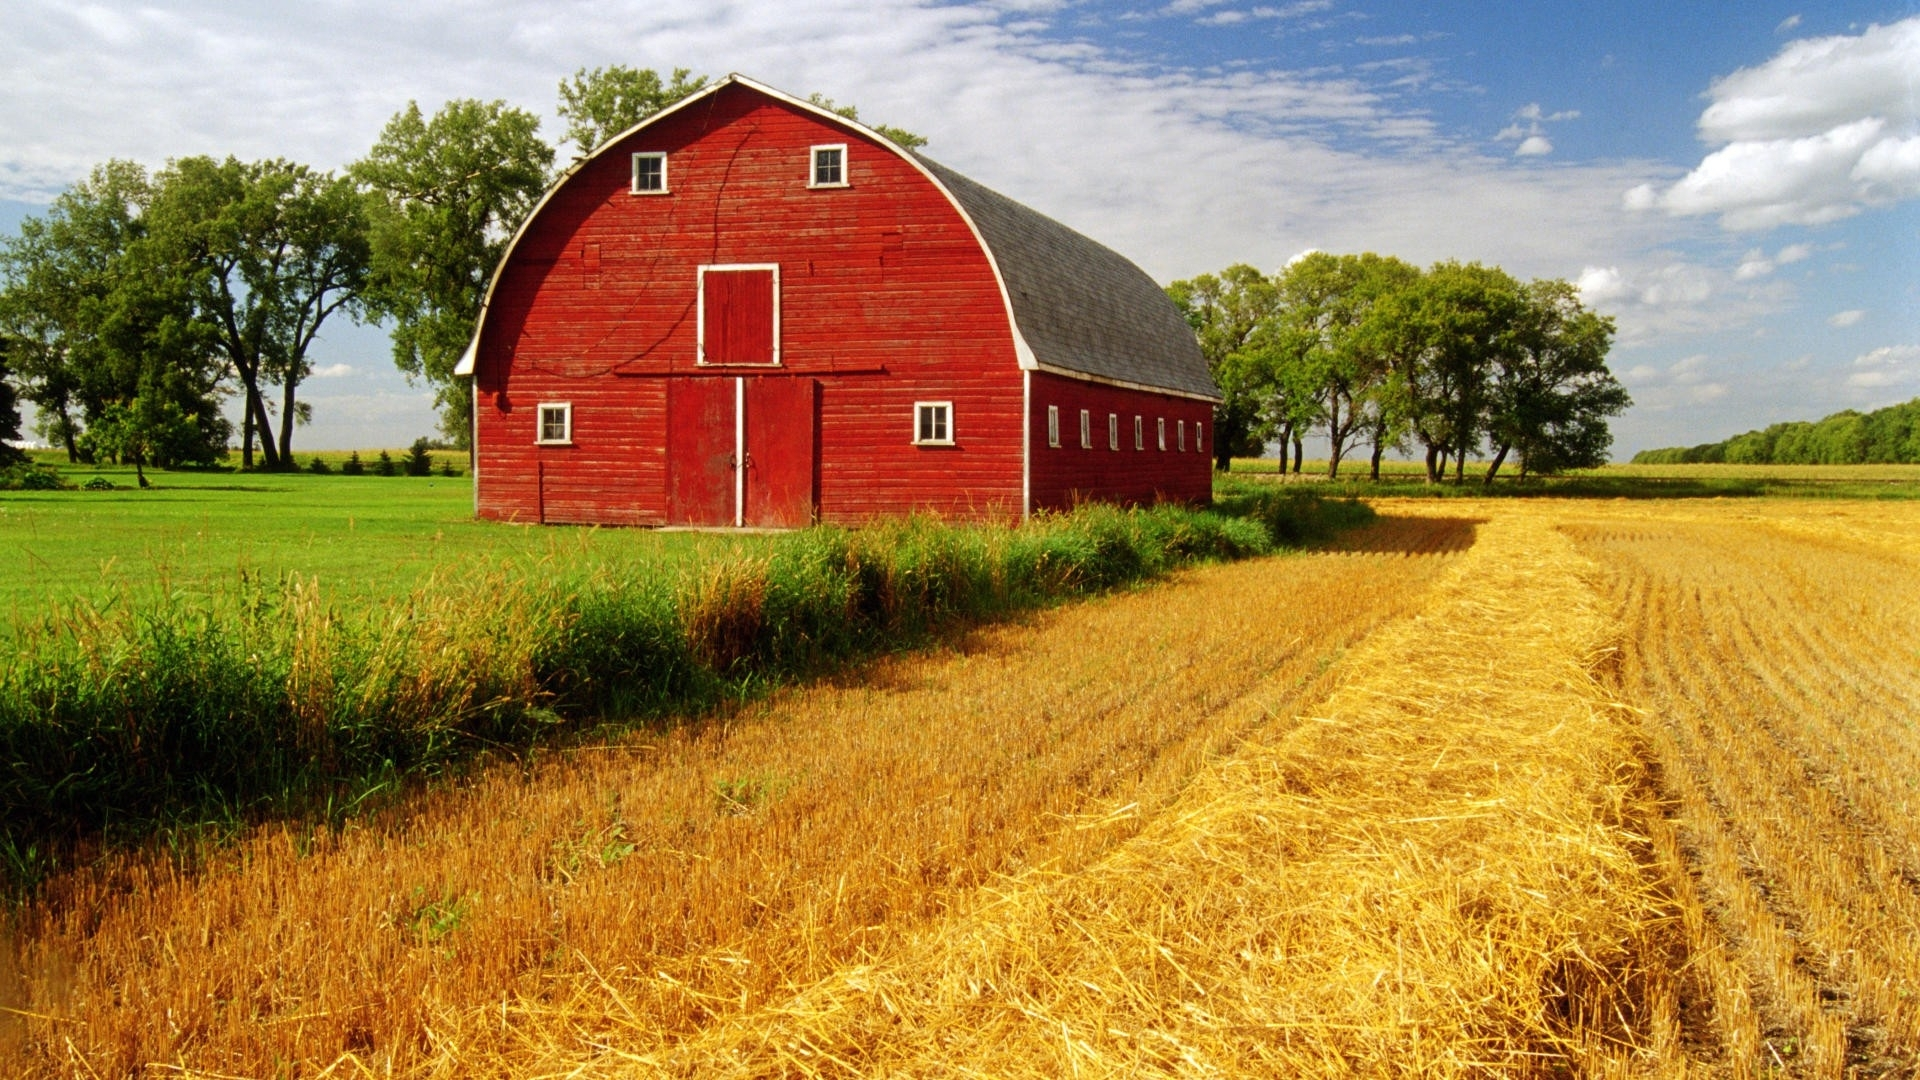 Farm Backgrounds and Wallpaper 1920x1080